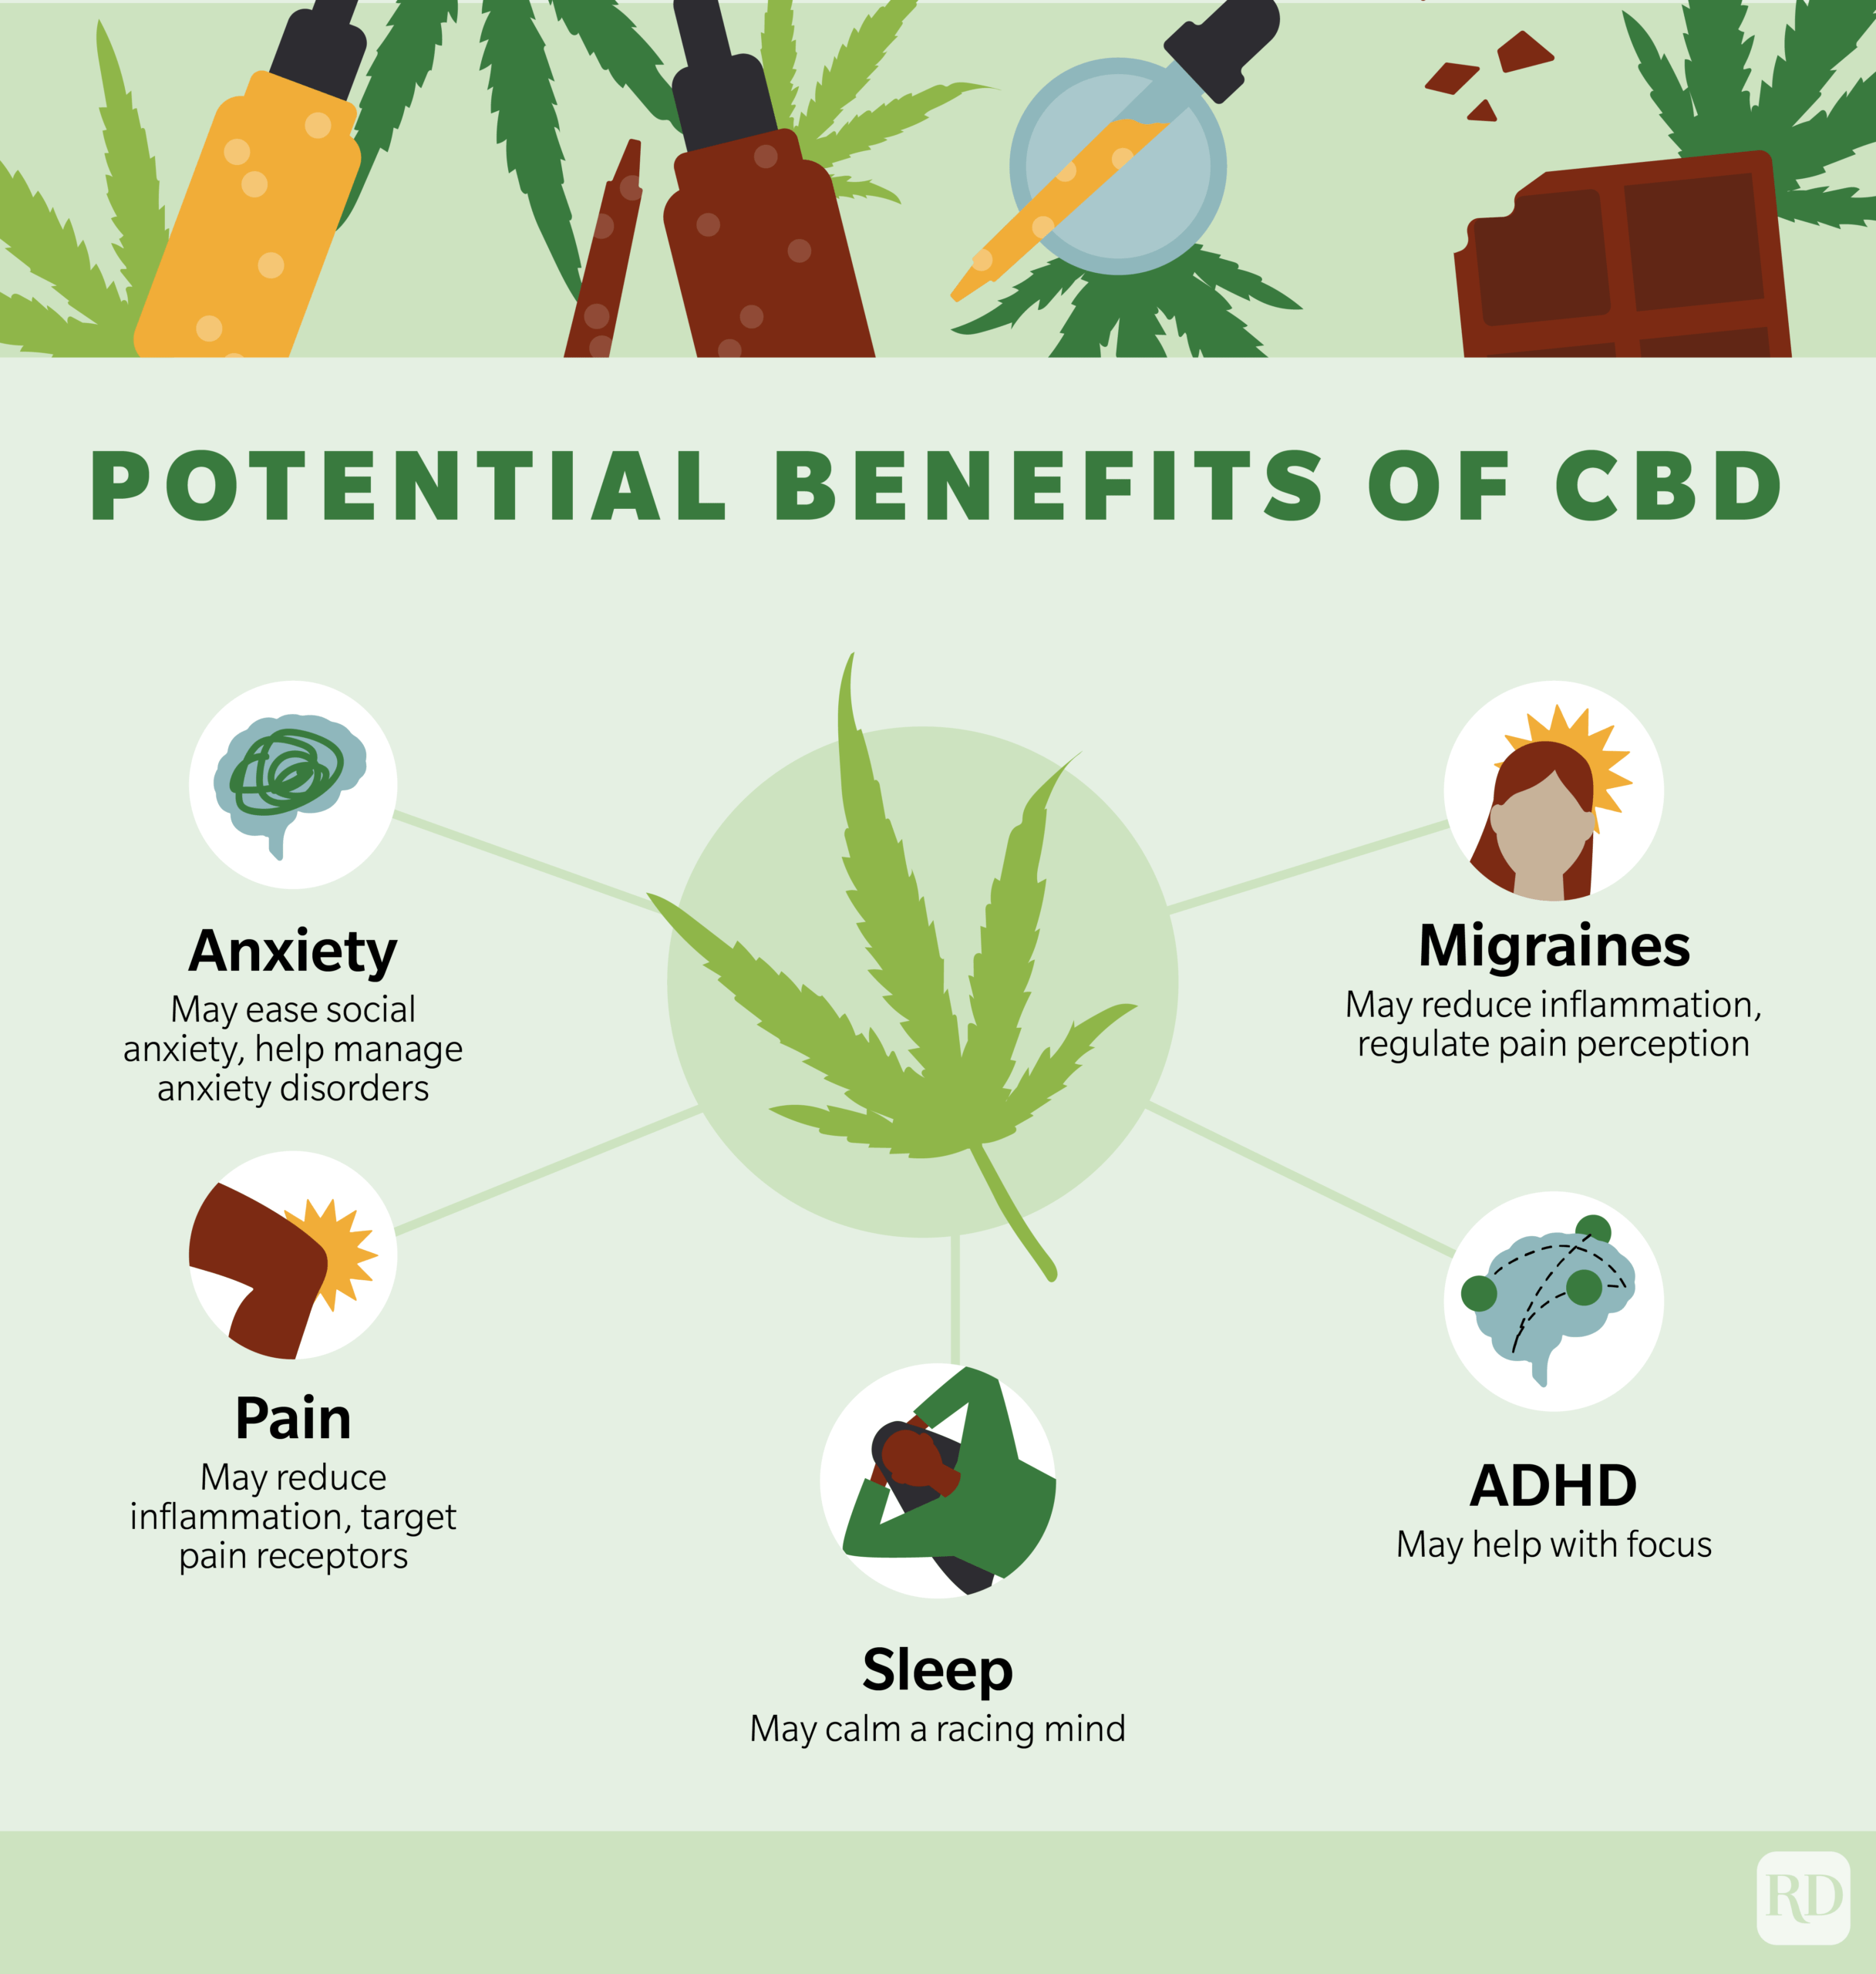 Potential Benefits of CBD infographic denoting anxiety, pain, sleep, adhd, and migraines